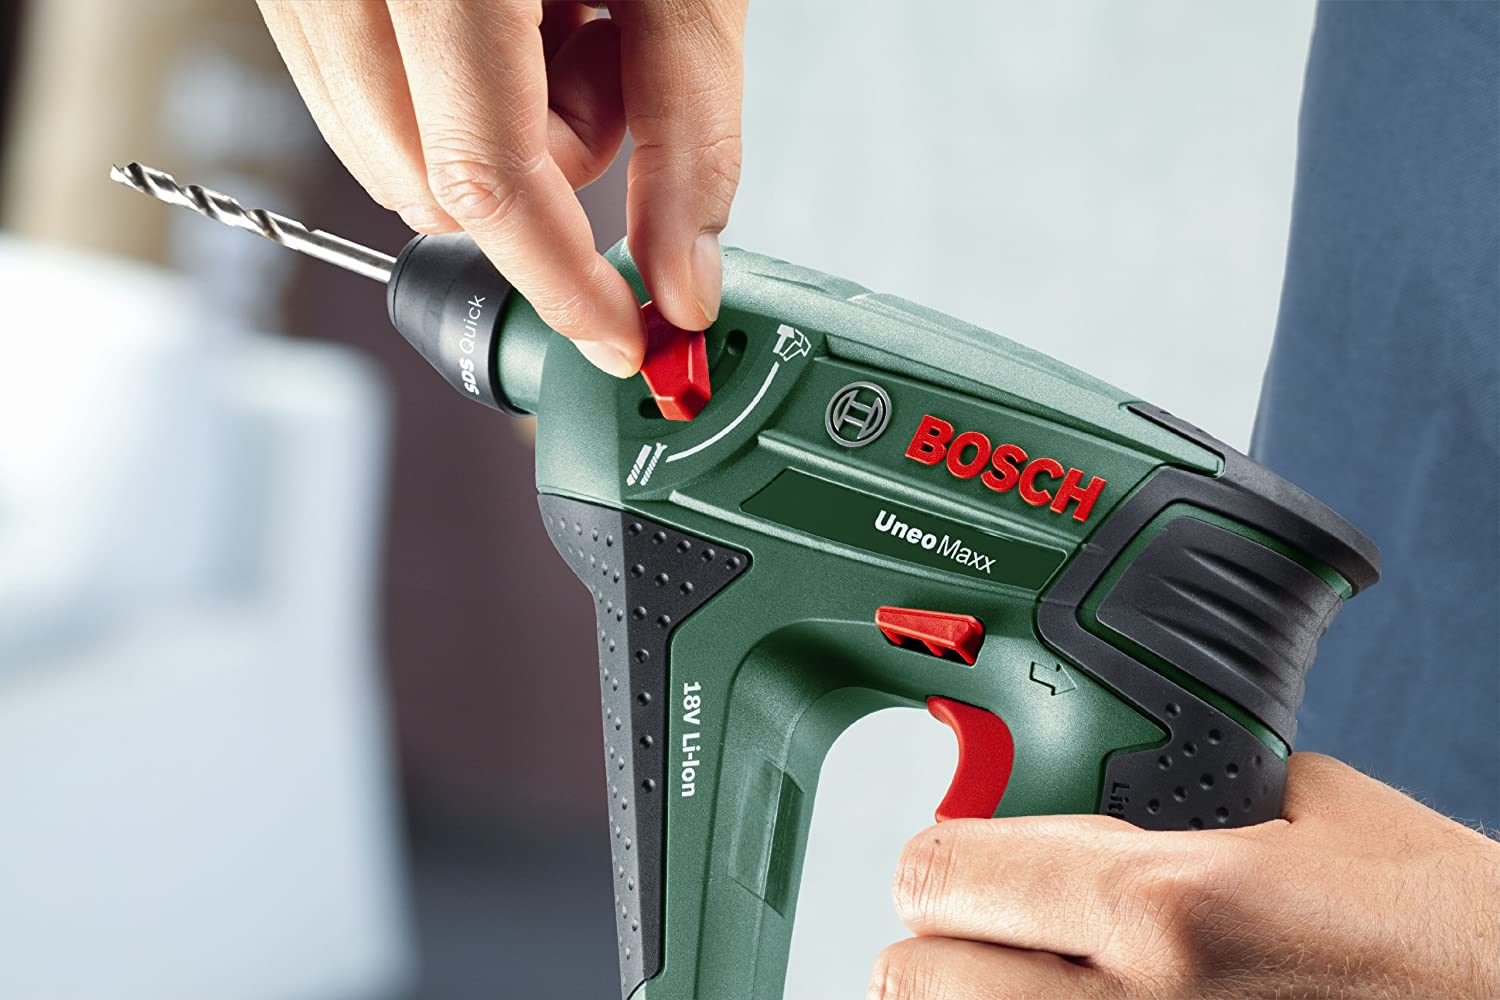 Bosch Uneo Maxx Cordless Lithium-Ion Pneumatic Rotary Hammer with 1 x 18 V  Battery, 1.5 Ah: Amazon.co.uk: DIY & Tools